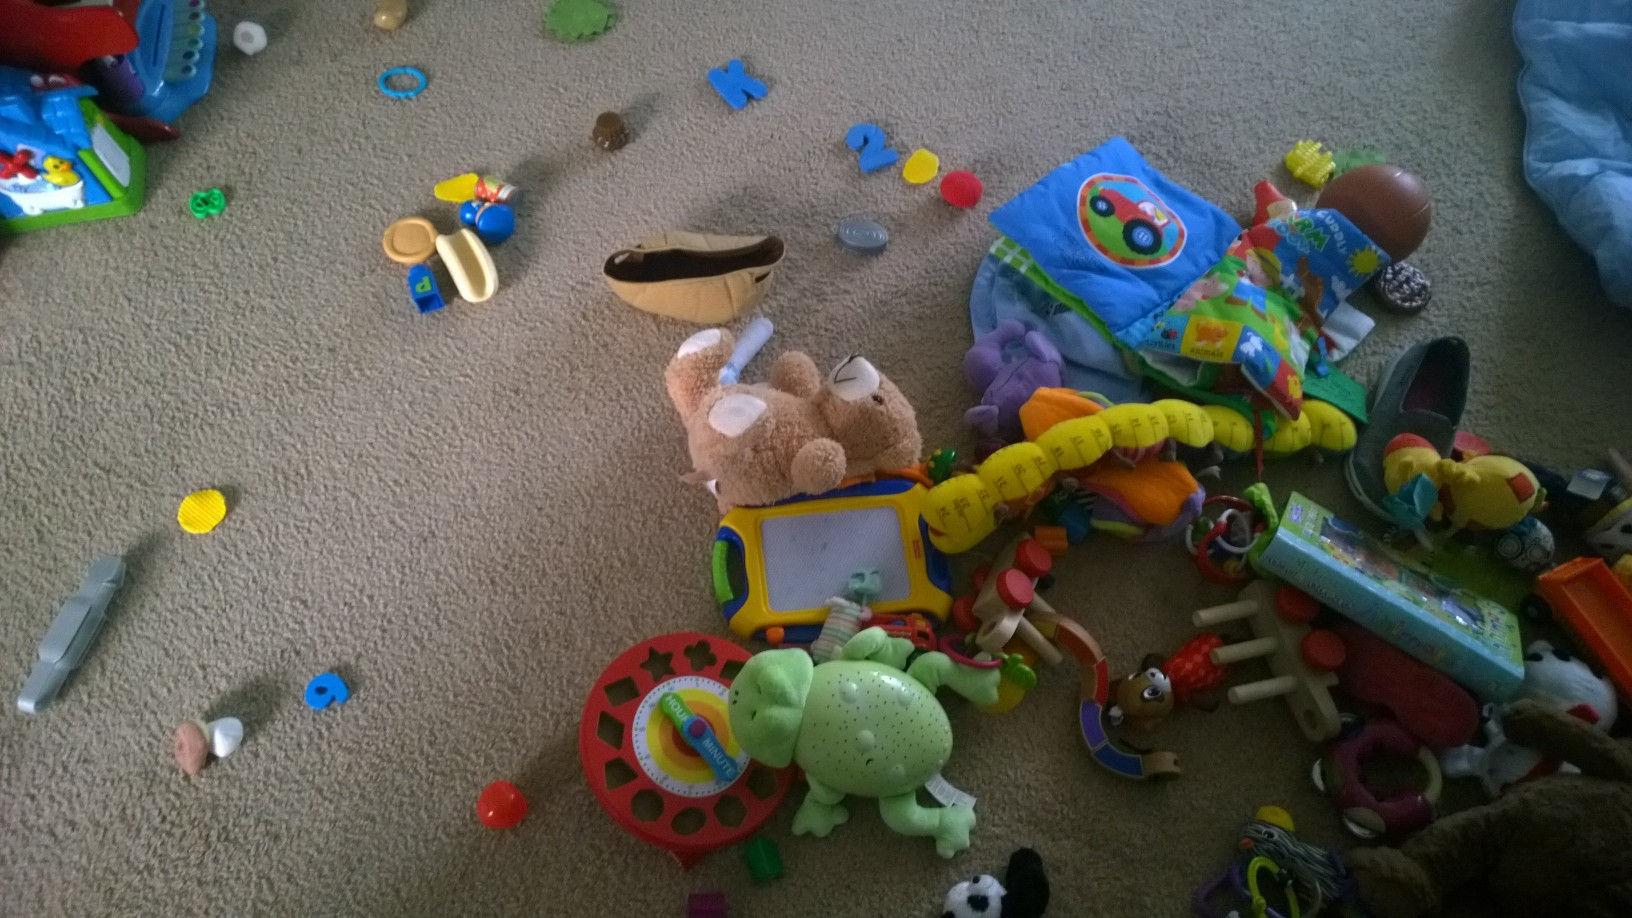 Ordinary mess from an active day.